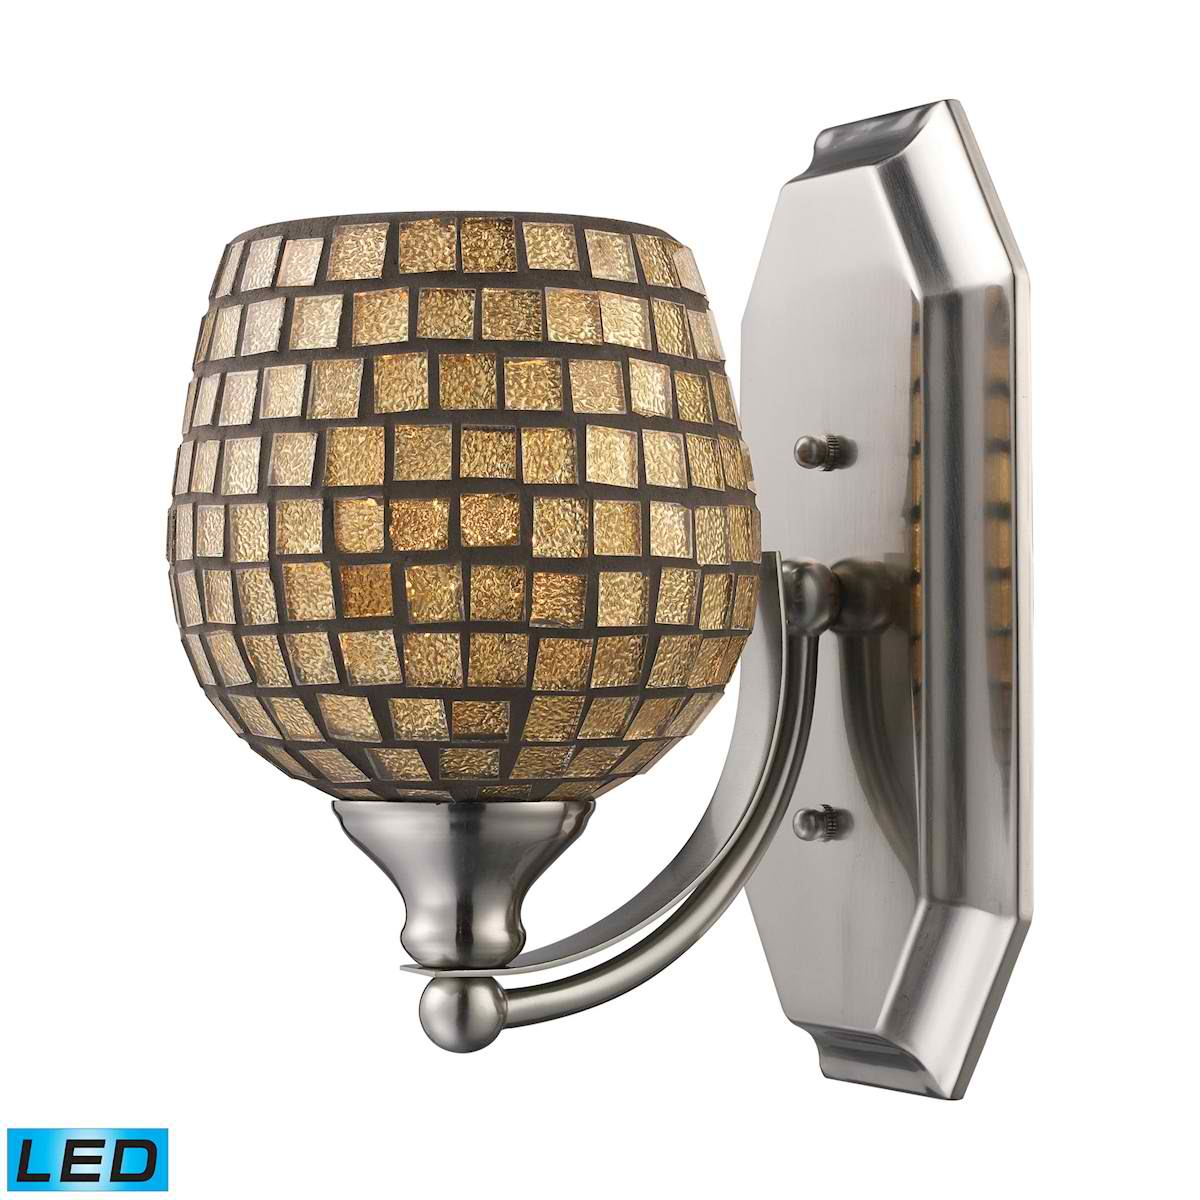 1 Light Vanity in Polished Chrome and Gold Mosaic Glass - LED Offering Up To 800 Lumens (60 Watt Equivalent)